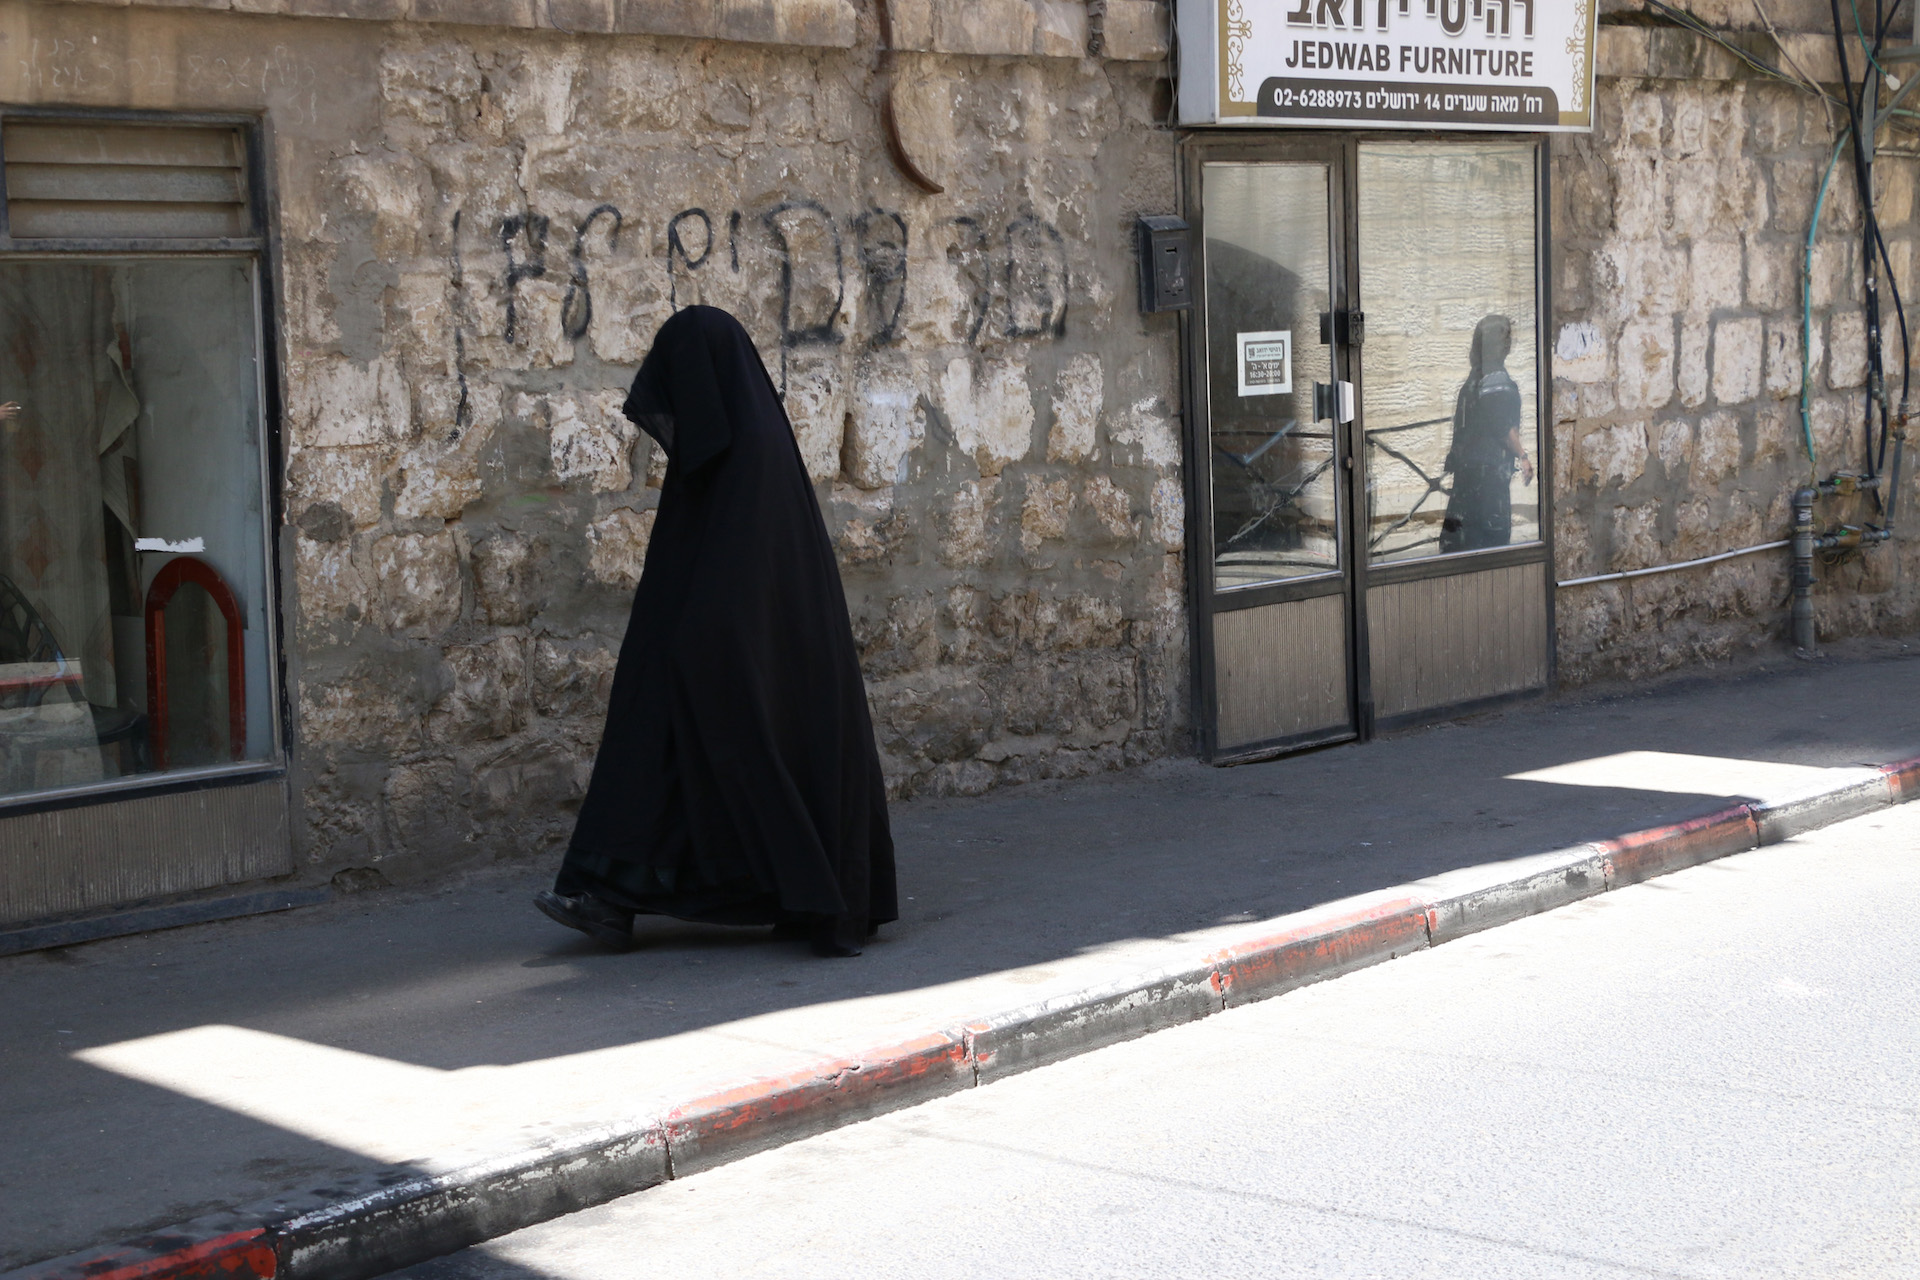 JERUSALEM, ISRAEL, MAY 30, 2016.  A Haredi woman in a burqa-style covering on the streets of Mea Shearim, an ultra-orthodox community in Jerusalem, Israel. 05/30/2016. Photo by Donna M. Airoldi